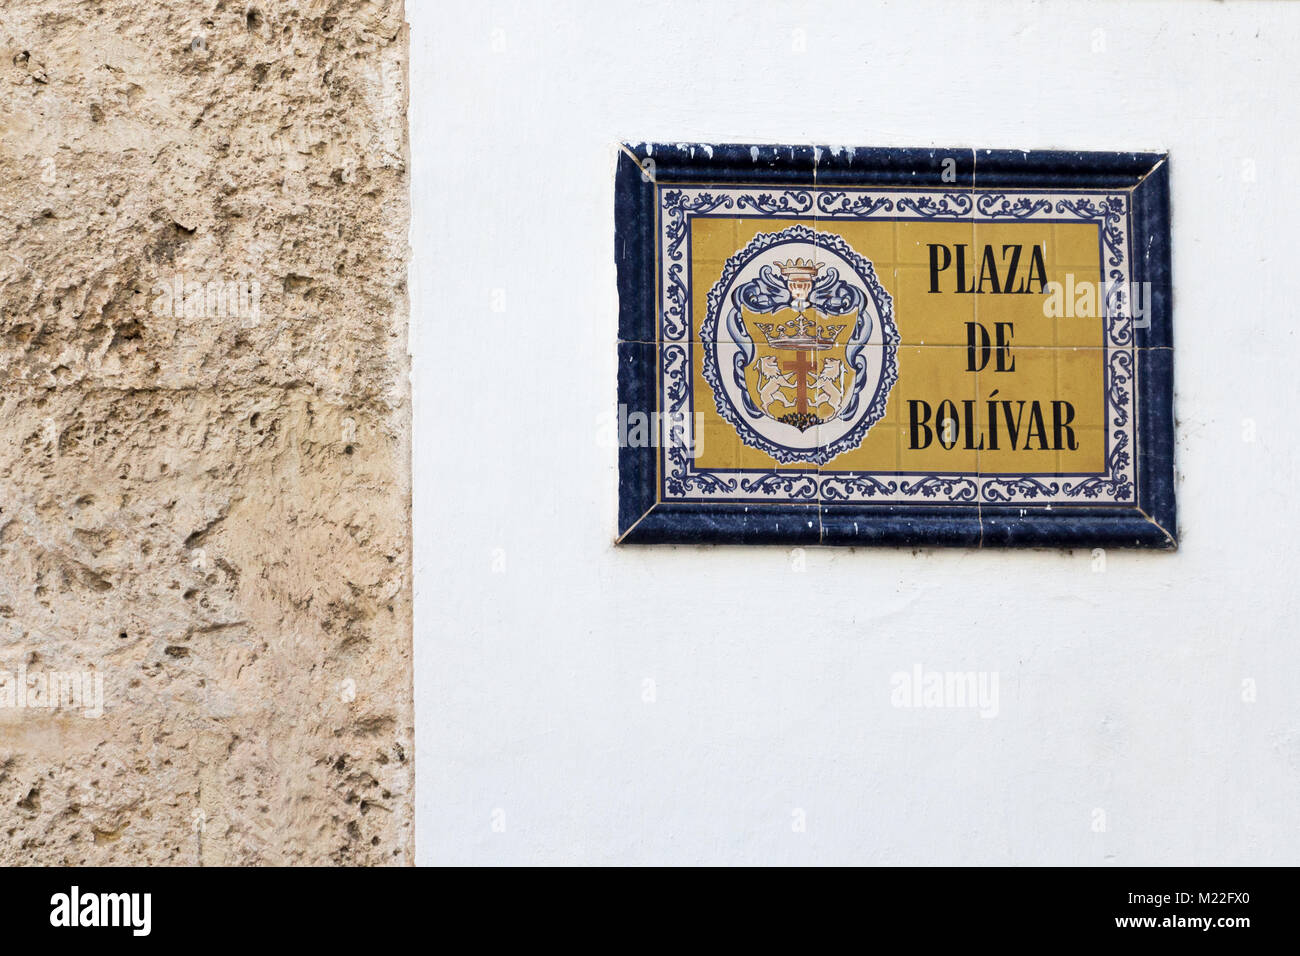 Plaza de Bolivar street plate on a wall at the old colonial town in Cartagena Colombia. - Stock Image